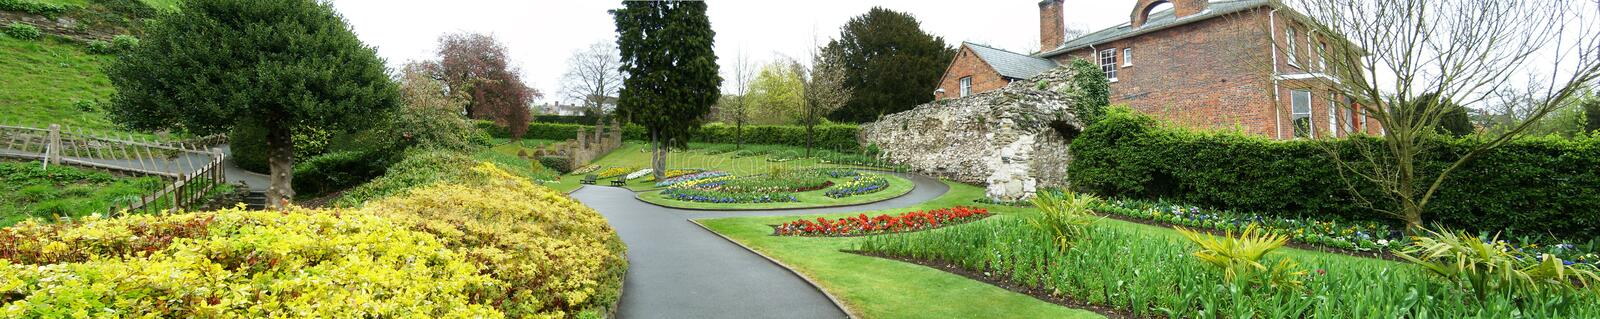 Gardens and flowers in Guildford. A stunning garden in guildford guild area. It has many flowers, including tulips, great lawn, pines and trees stock image